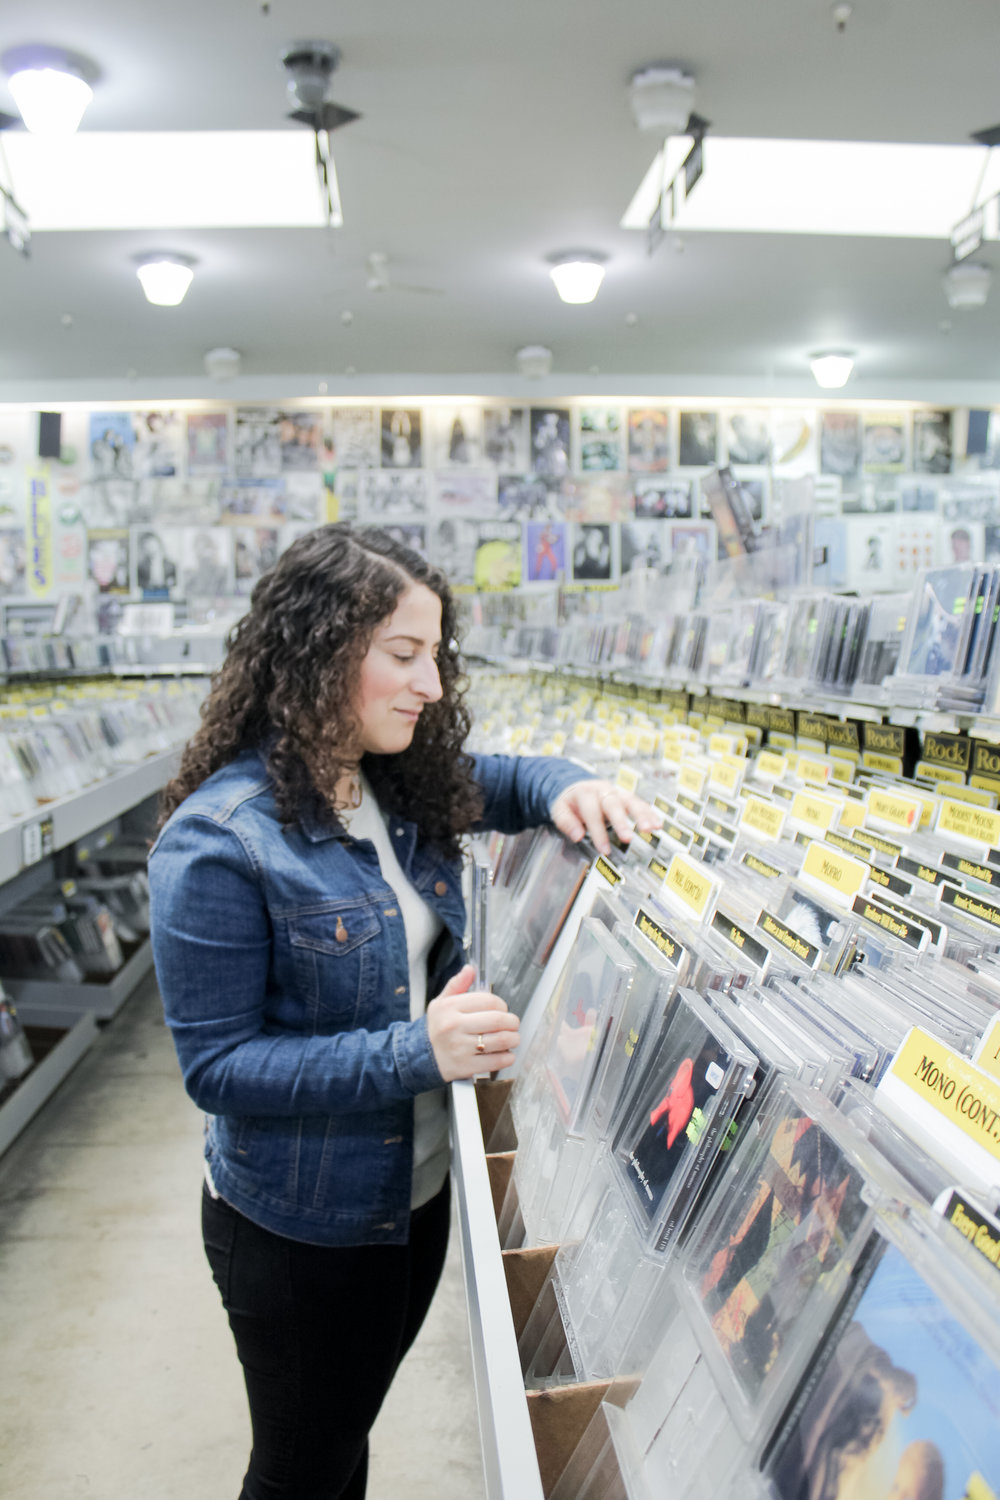 Amoeba Music Store in the Haight-Ashbury neighborhood of San Francisco | Tinted Green